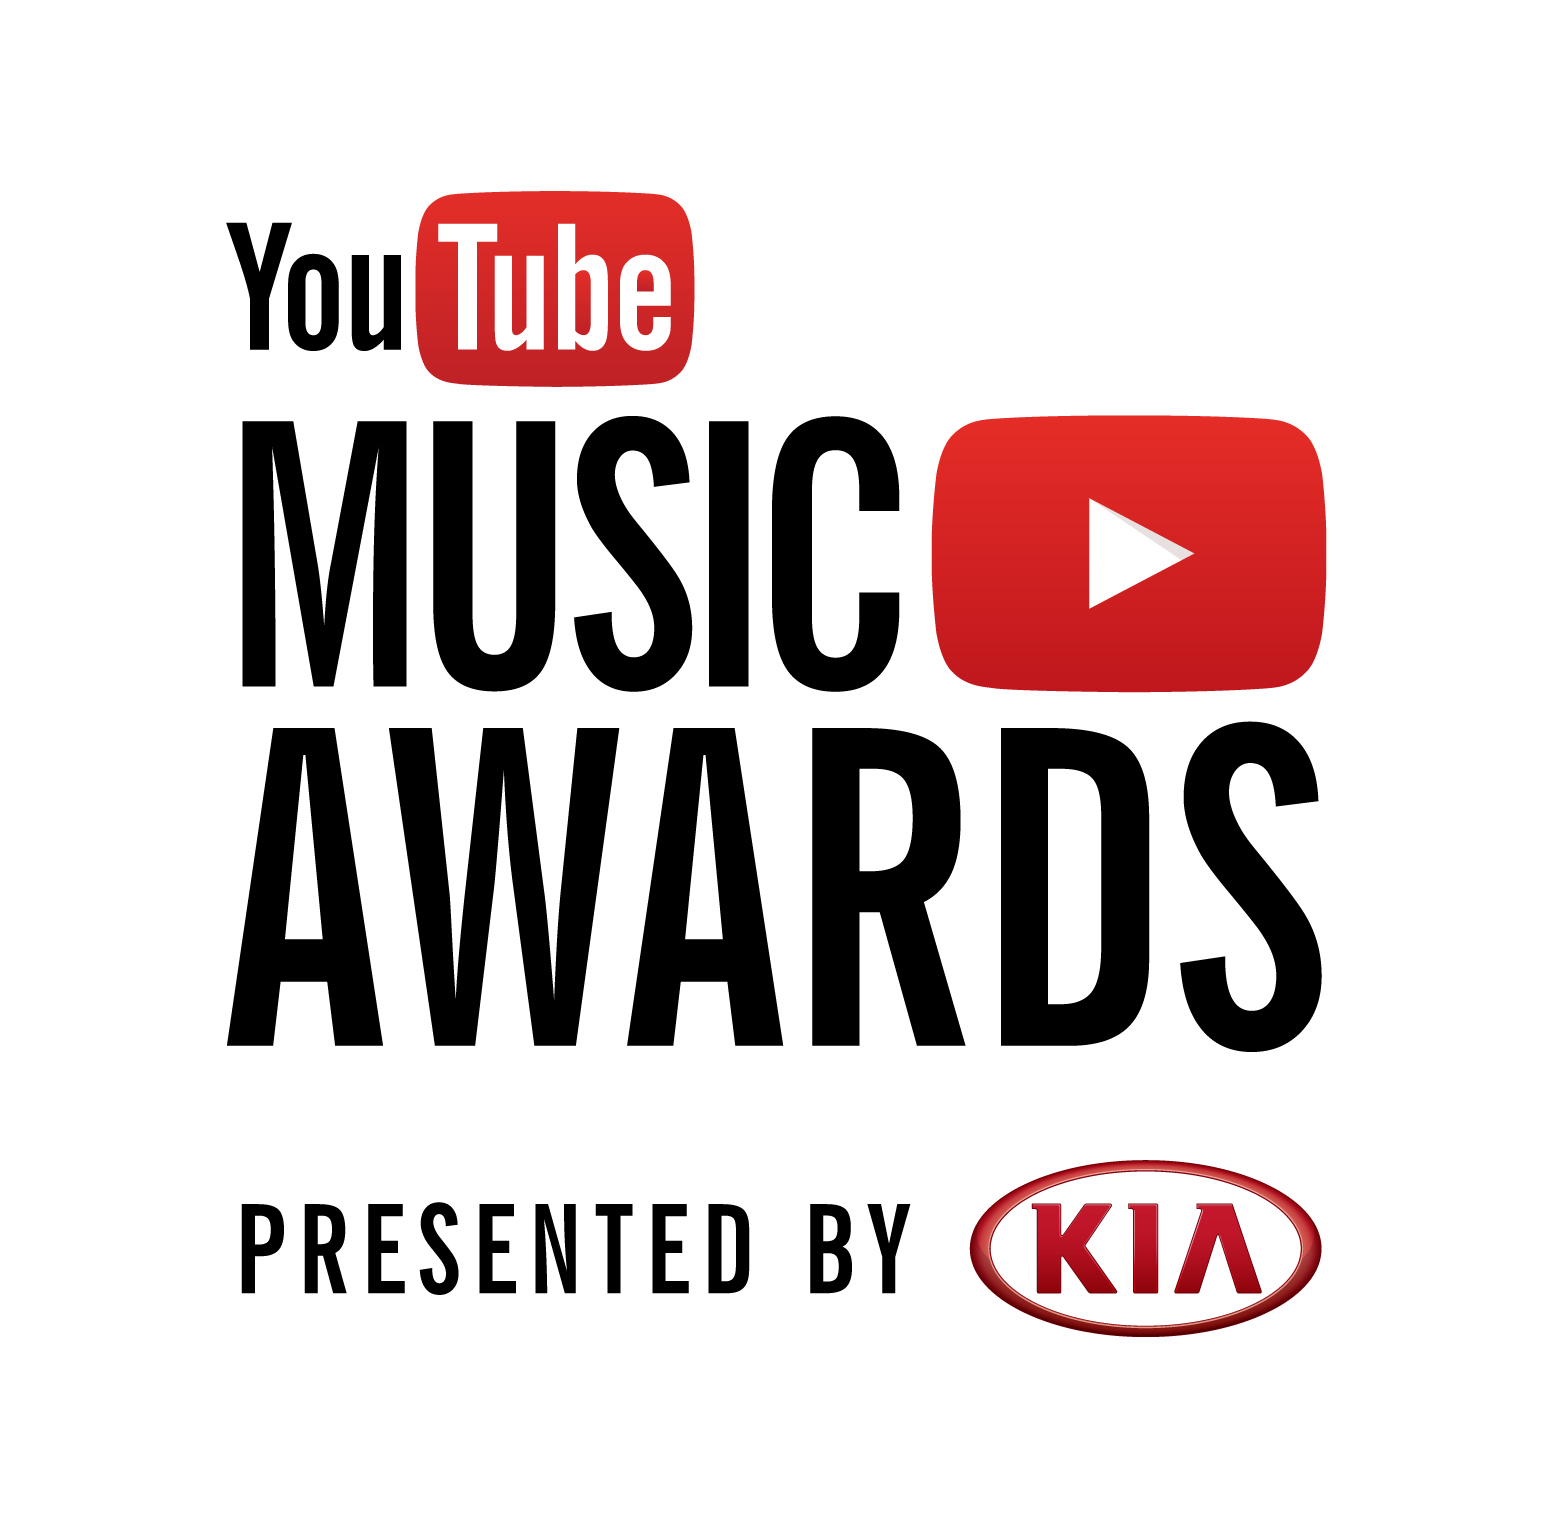 youtube music awards logo hoch